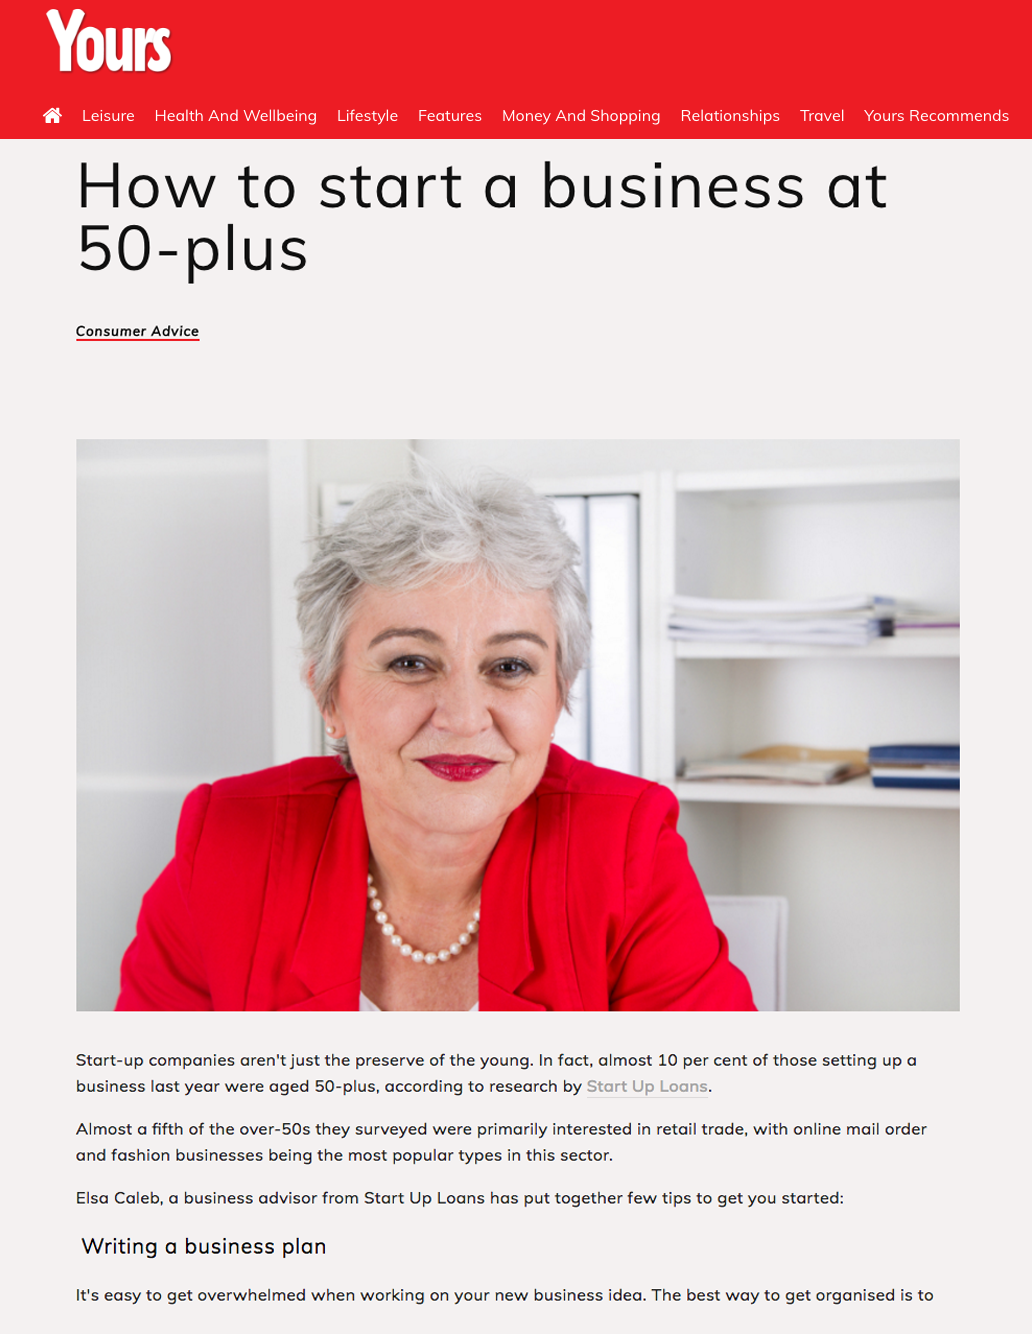 How to start a business at 50-plus